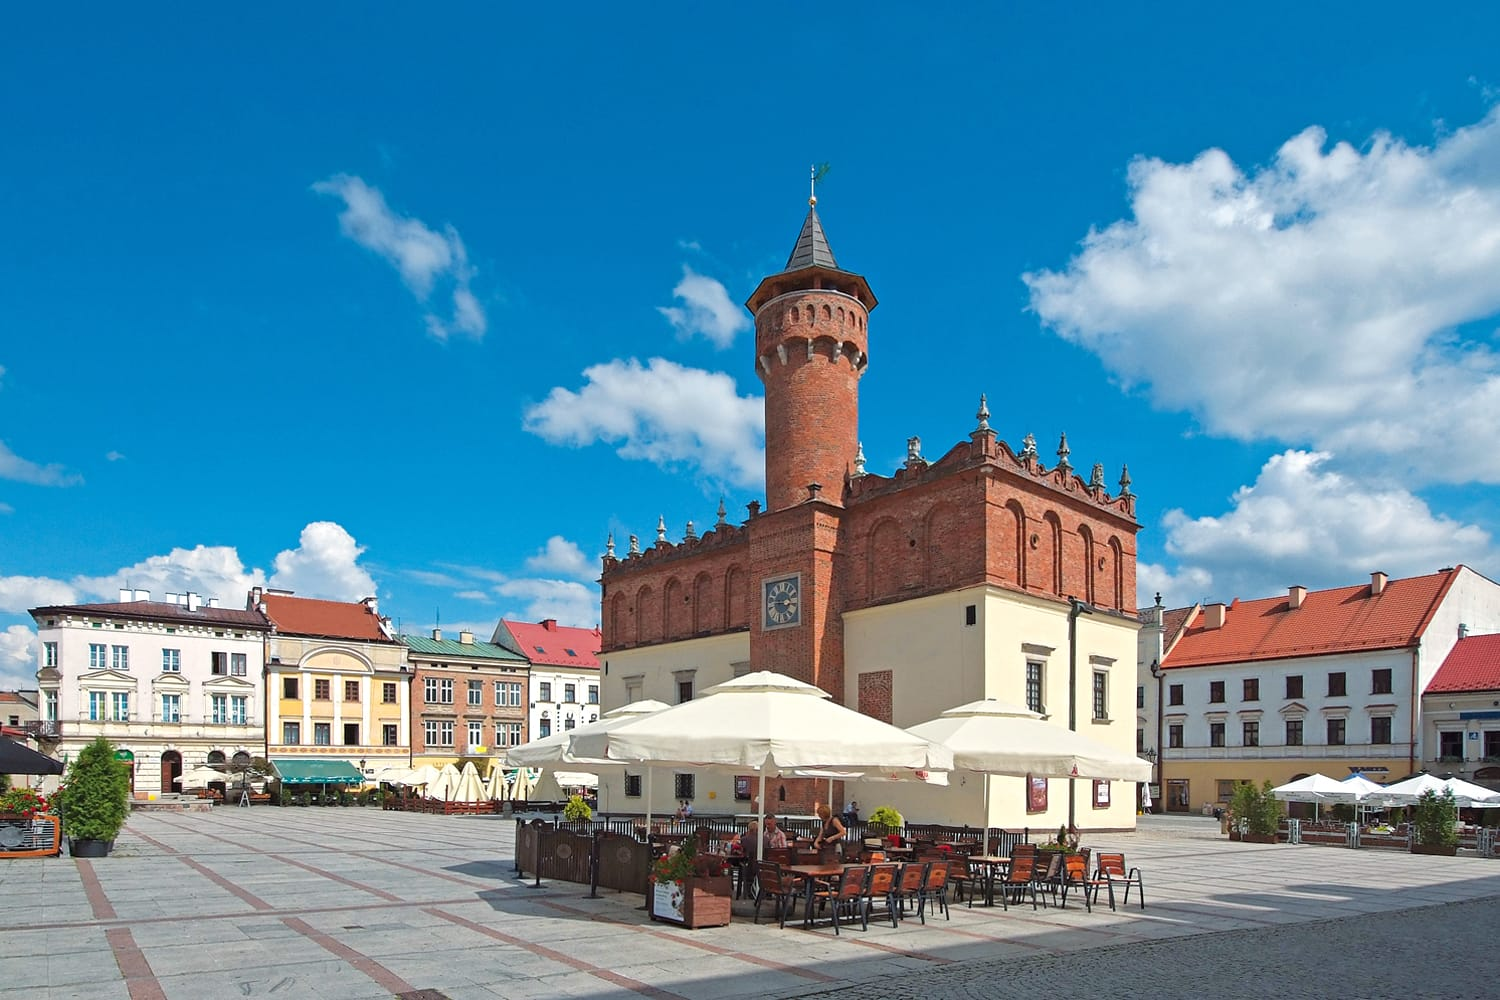 Market Square in Tarnow, Poland